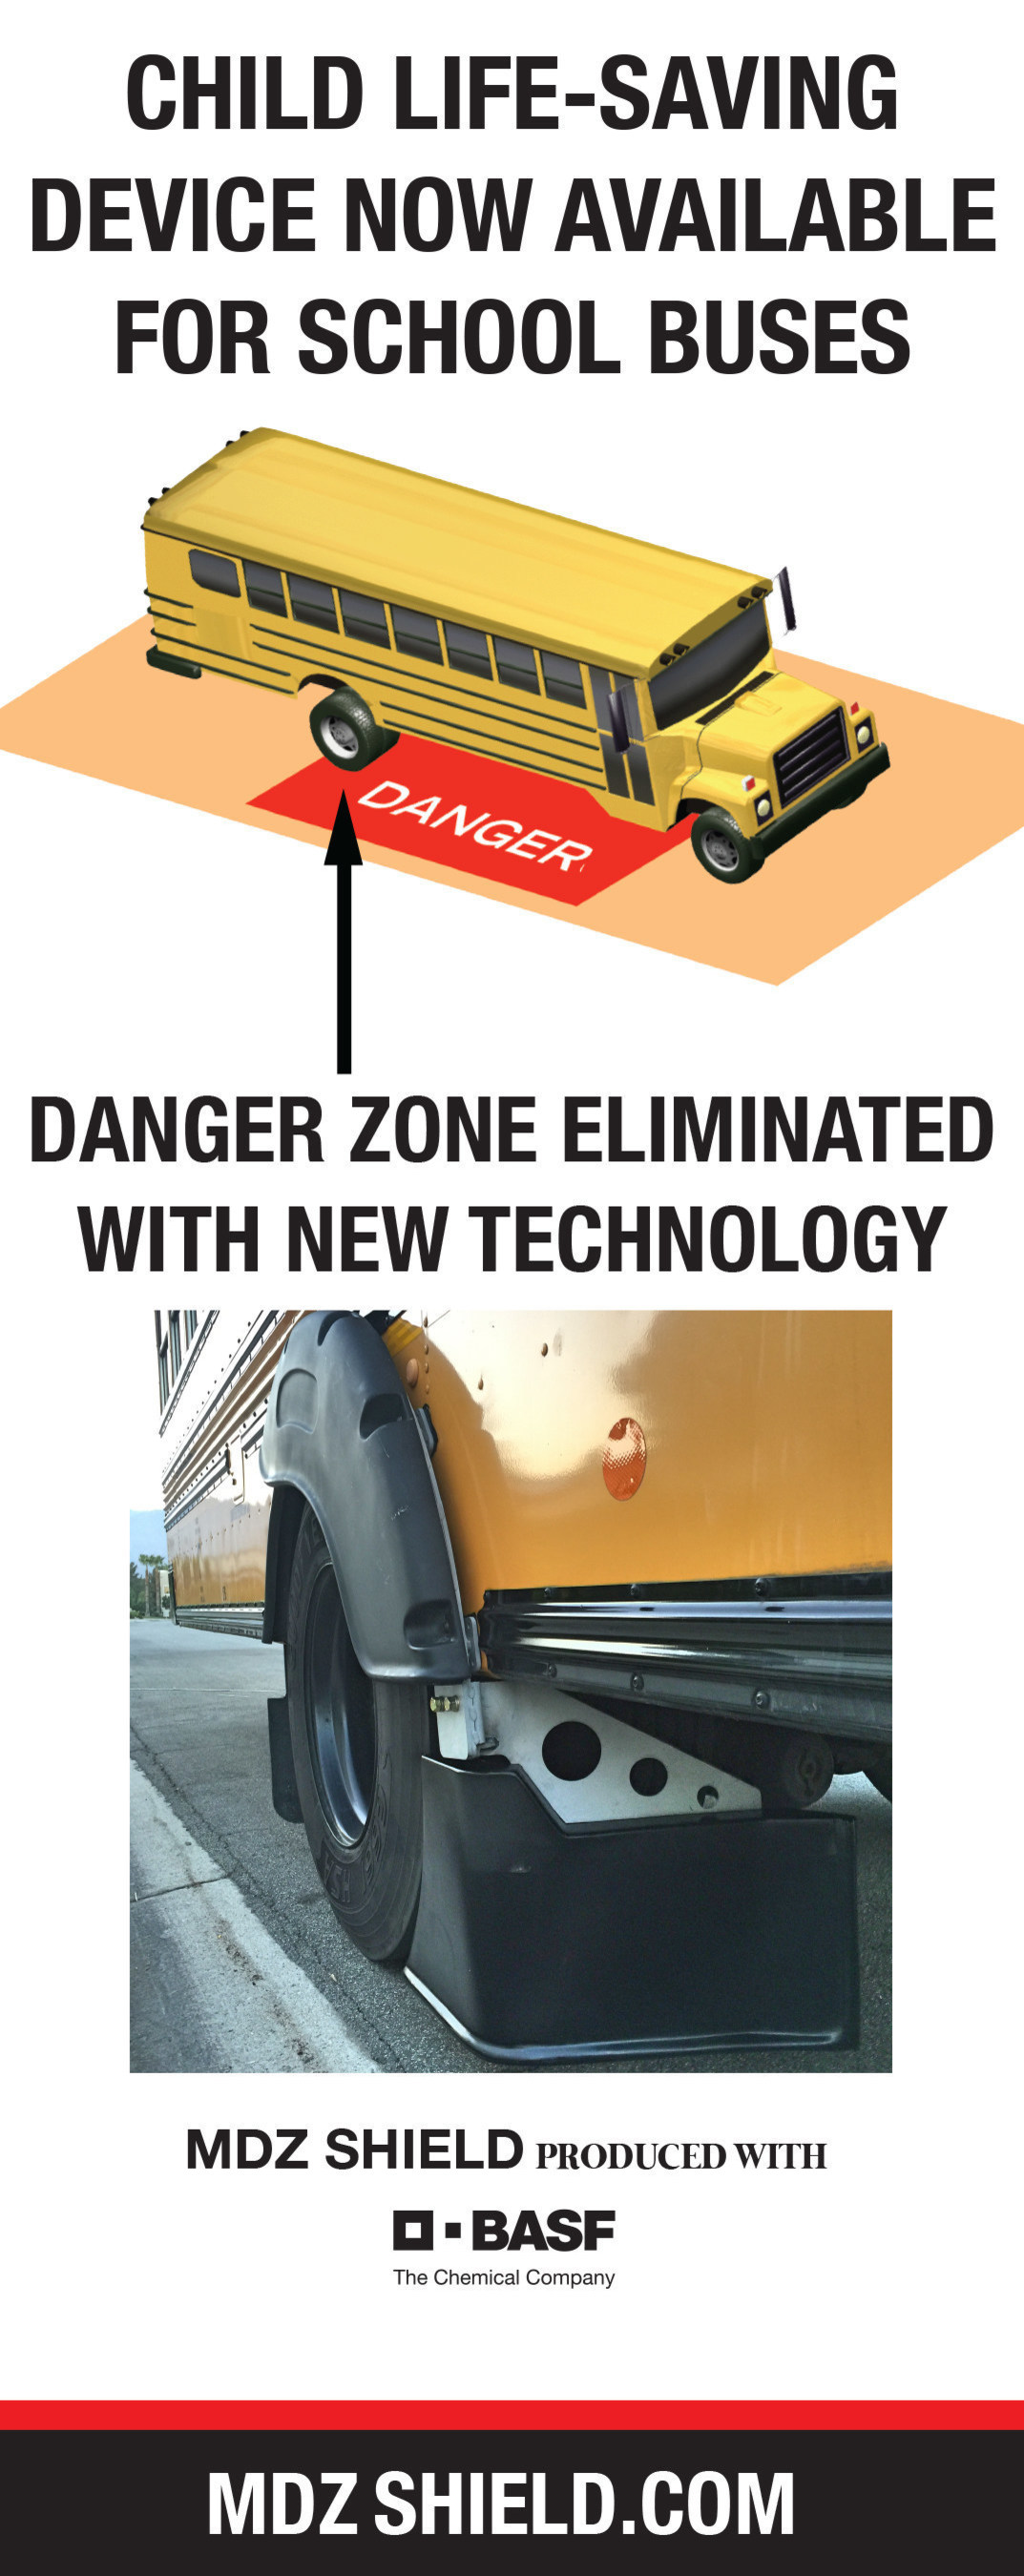 Child Life-Saving Shield Now Available For School Buses